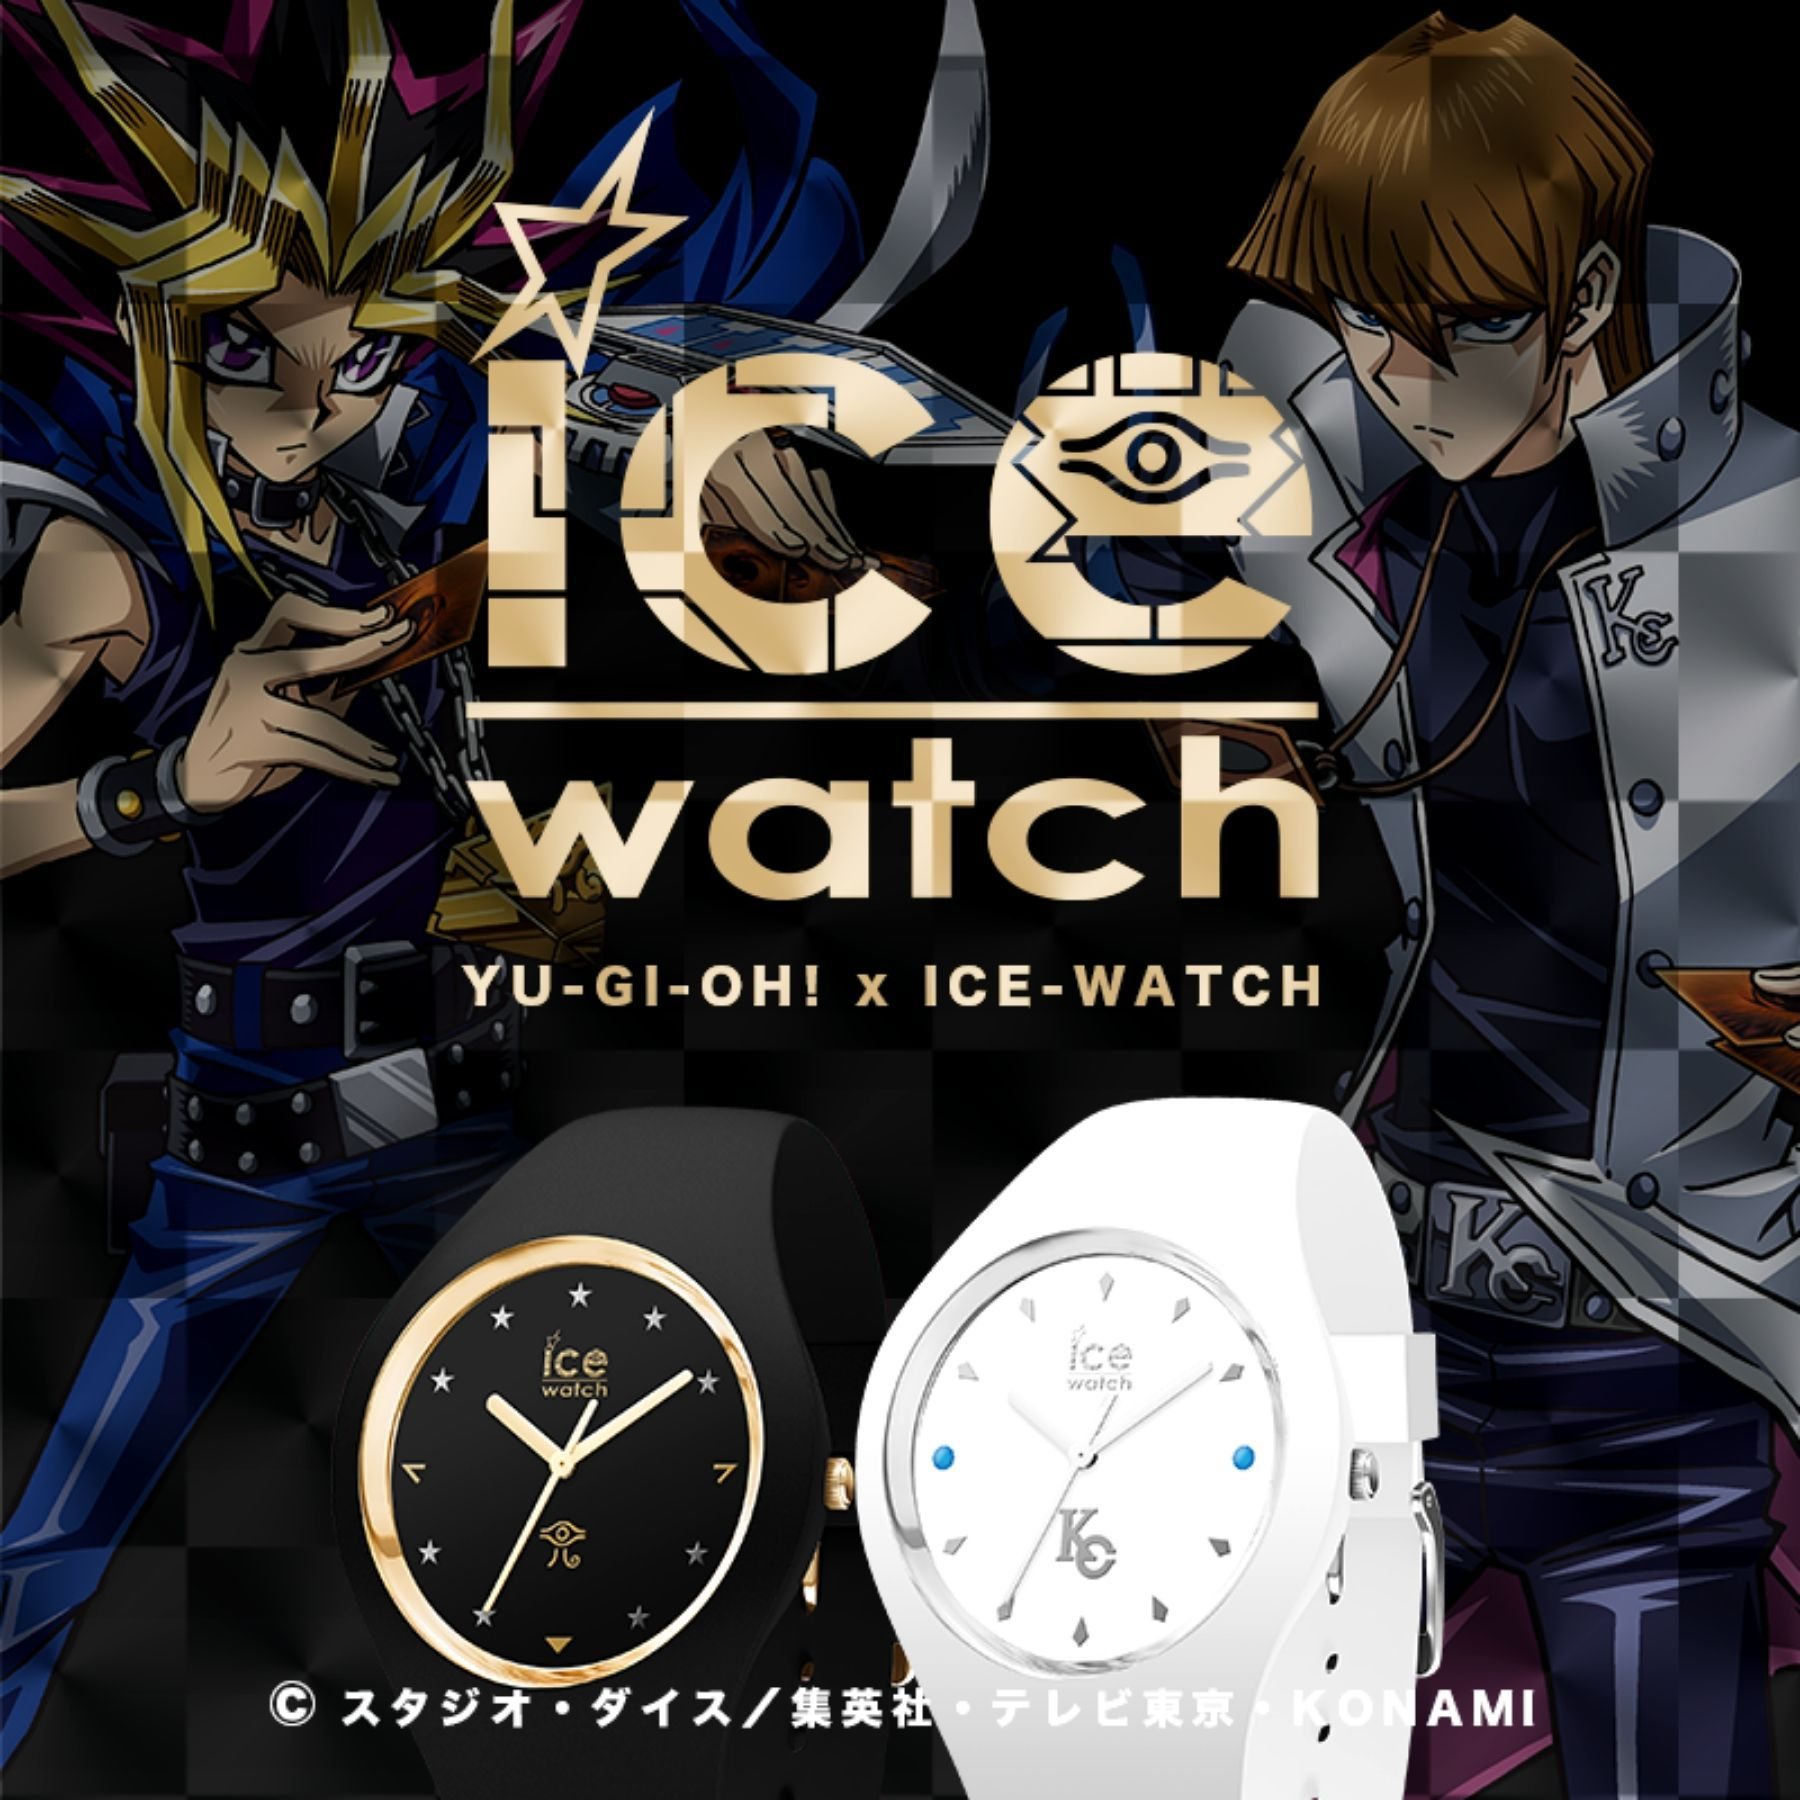 Yu-Gi-Oh! Duel Monsters/ICE-WATCH Collaboration